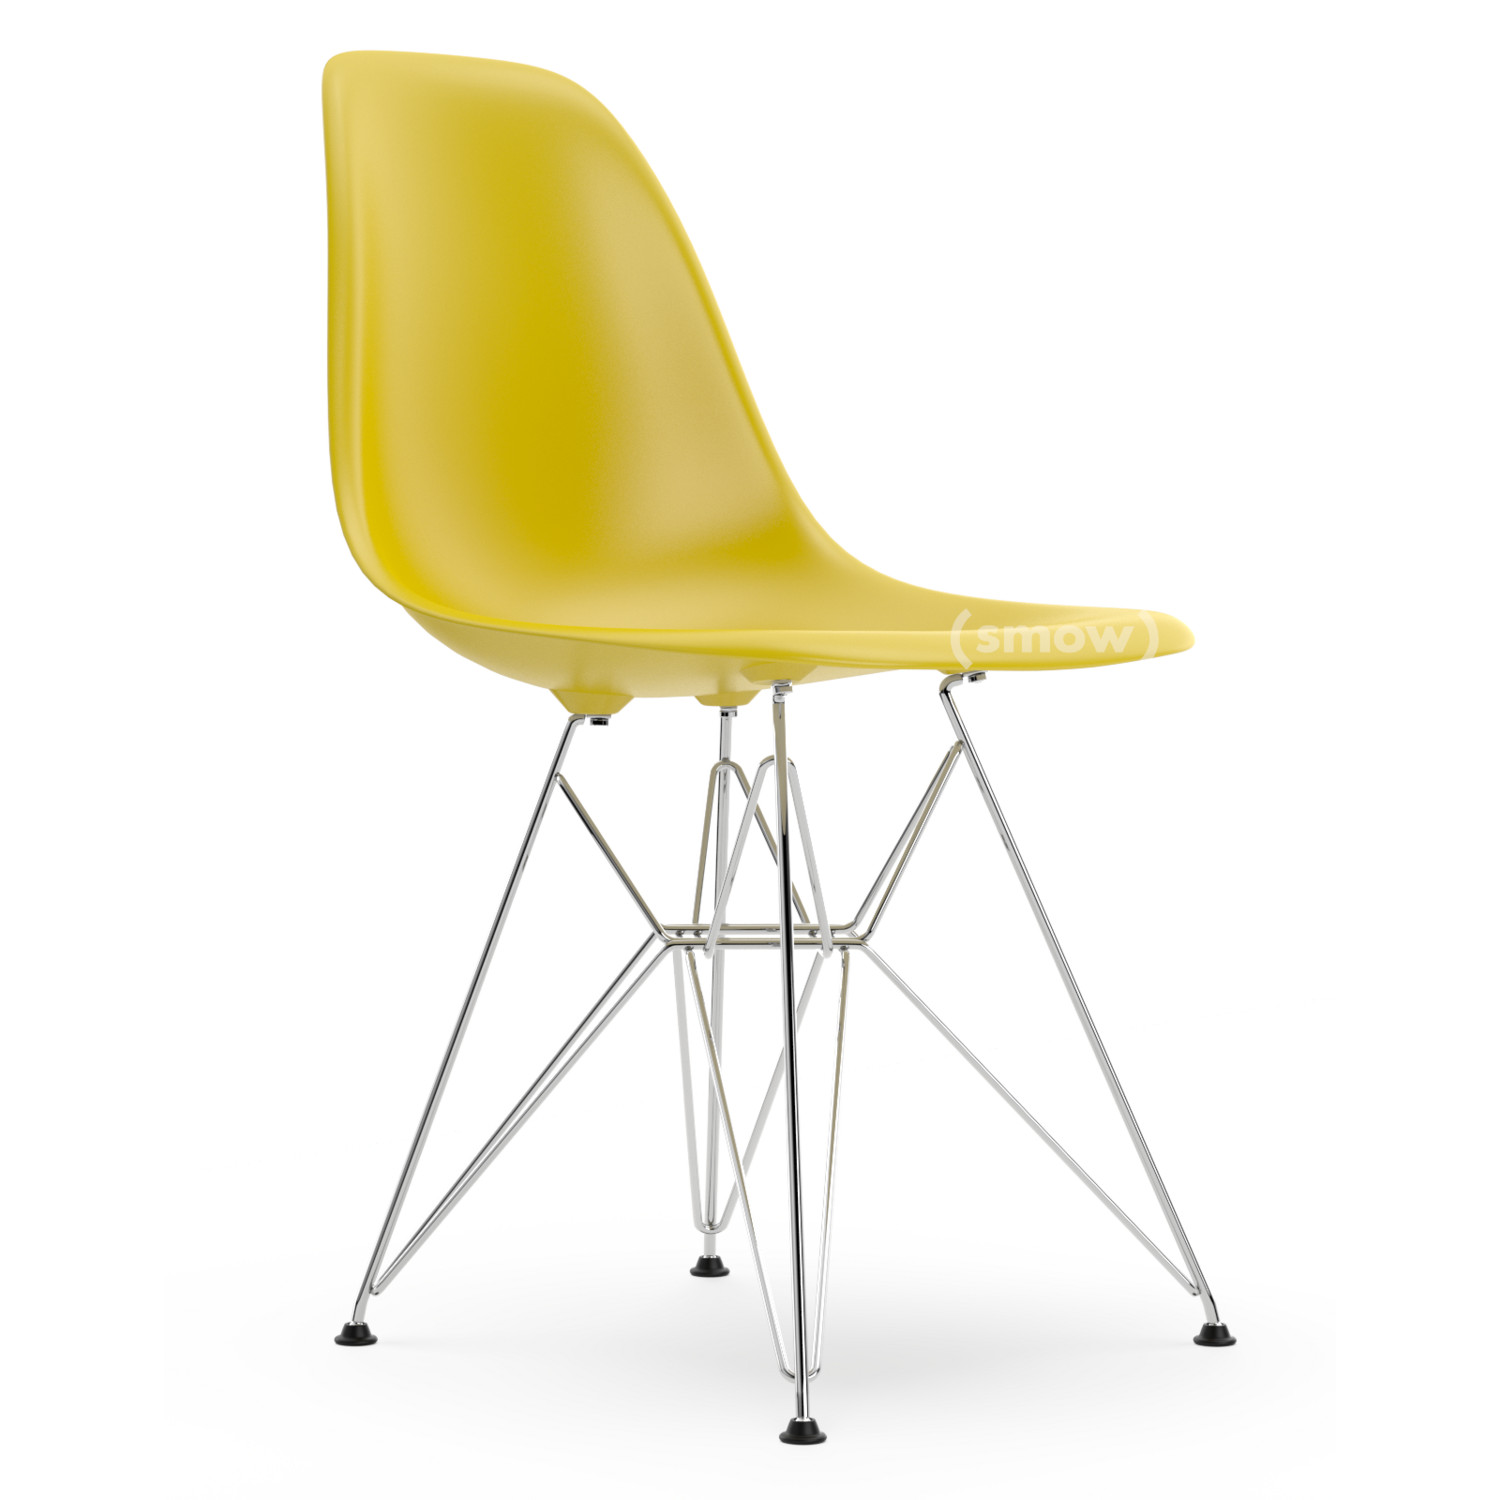 vitra eames plastic side chair dsr mustard without upholstery without upholstery standard. Black Bedroom Furniture Sets. Home Design Ideas